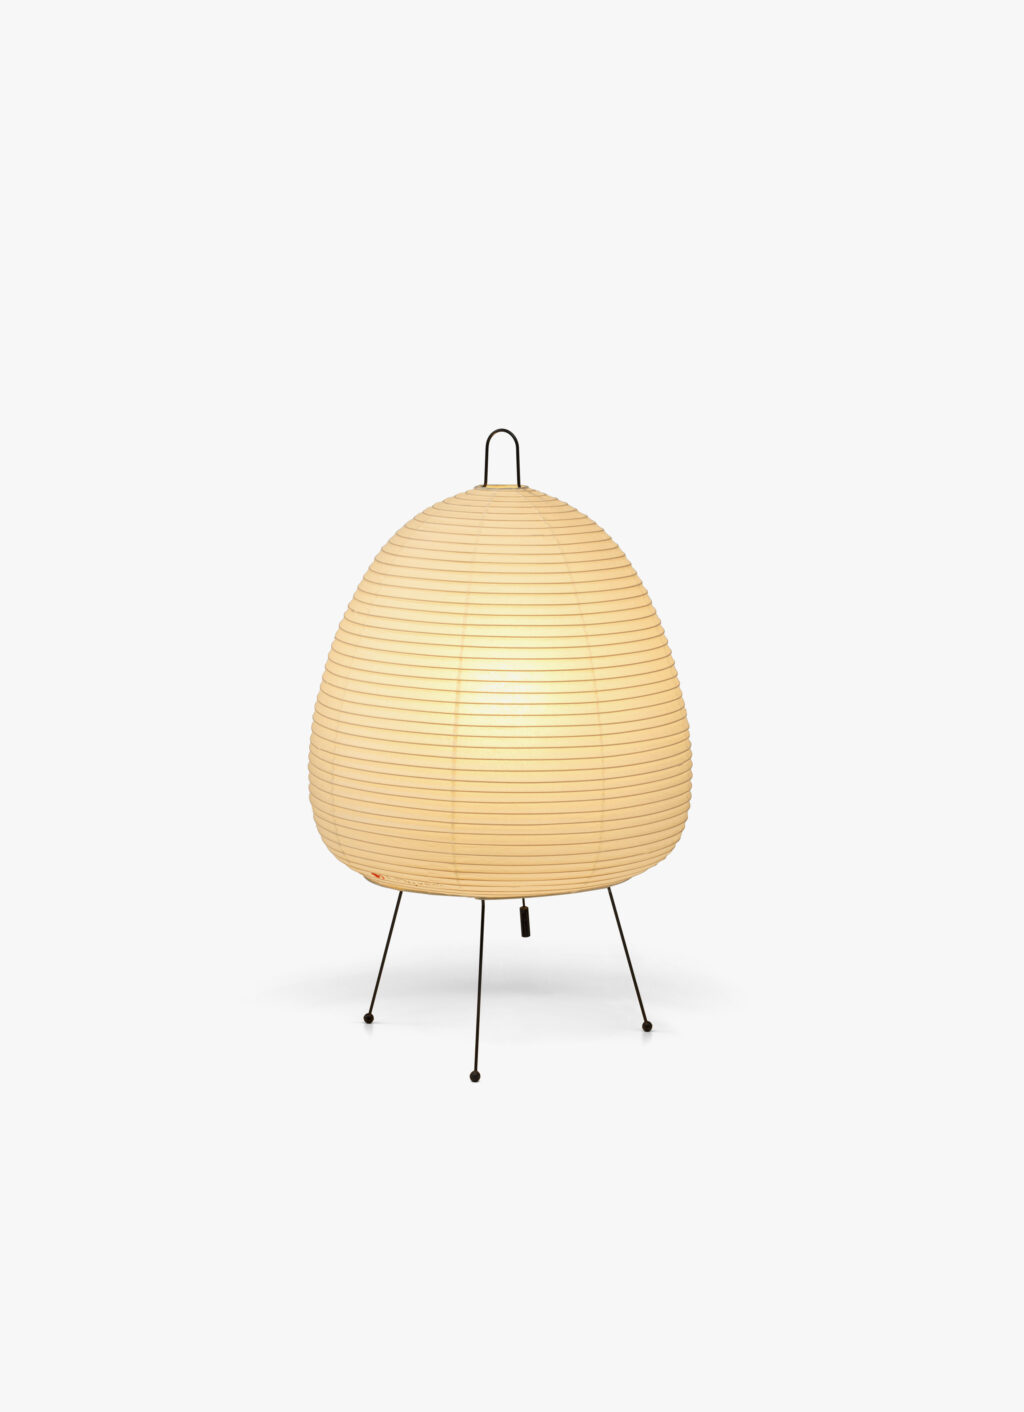 Vitra - Akari light sculpture - Isamu Noguchi - Table light - 1A